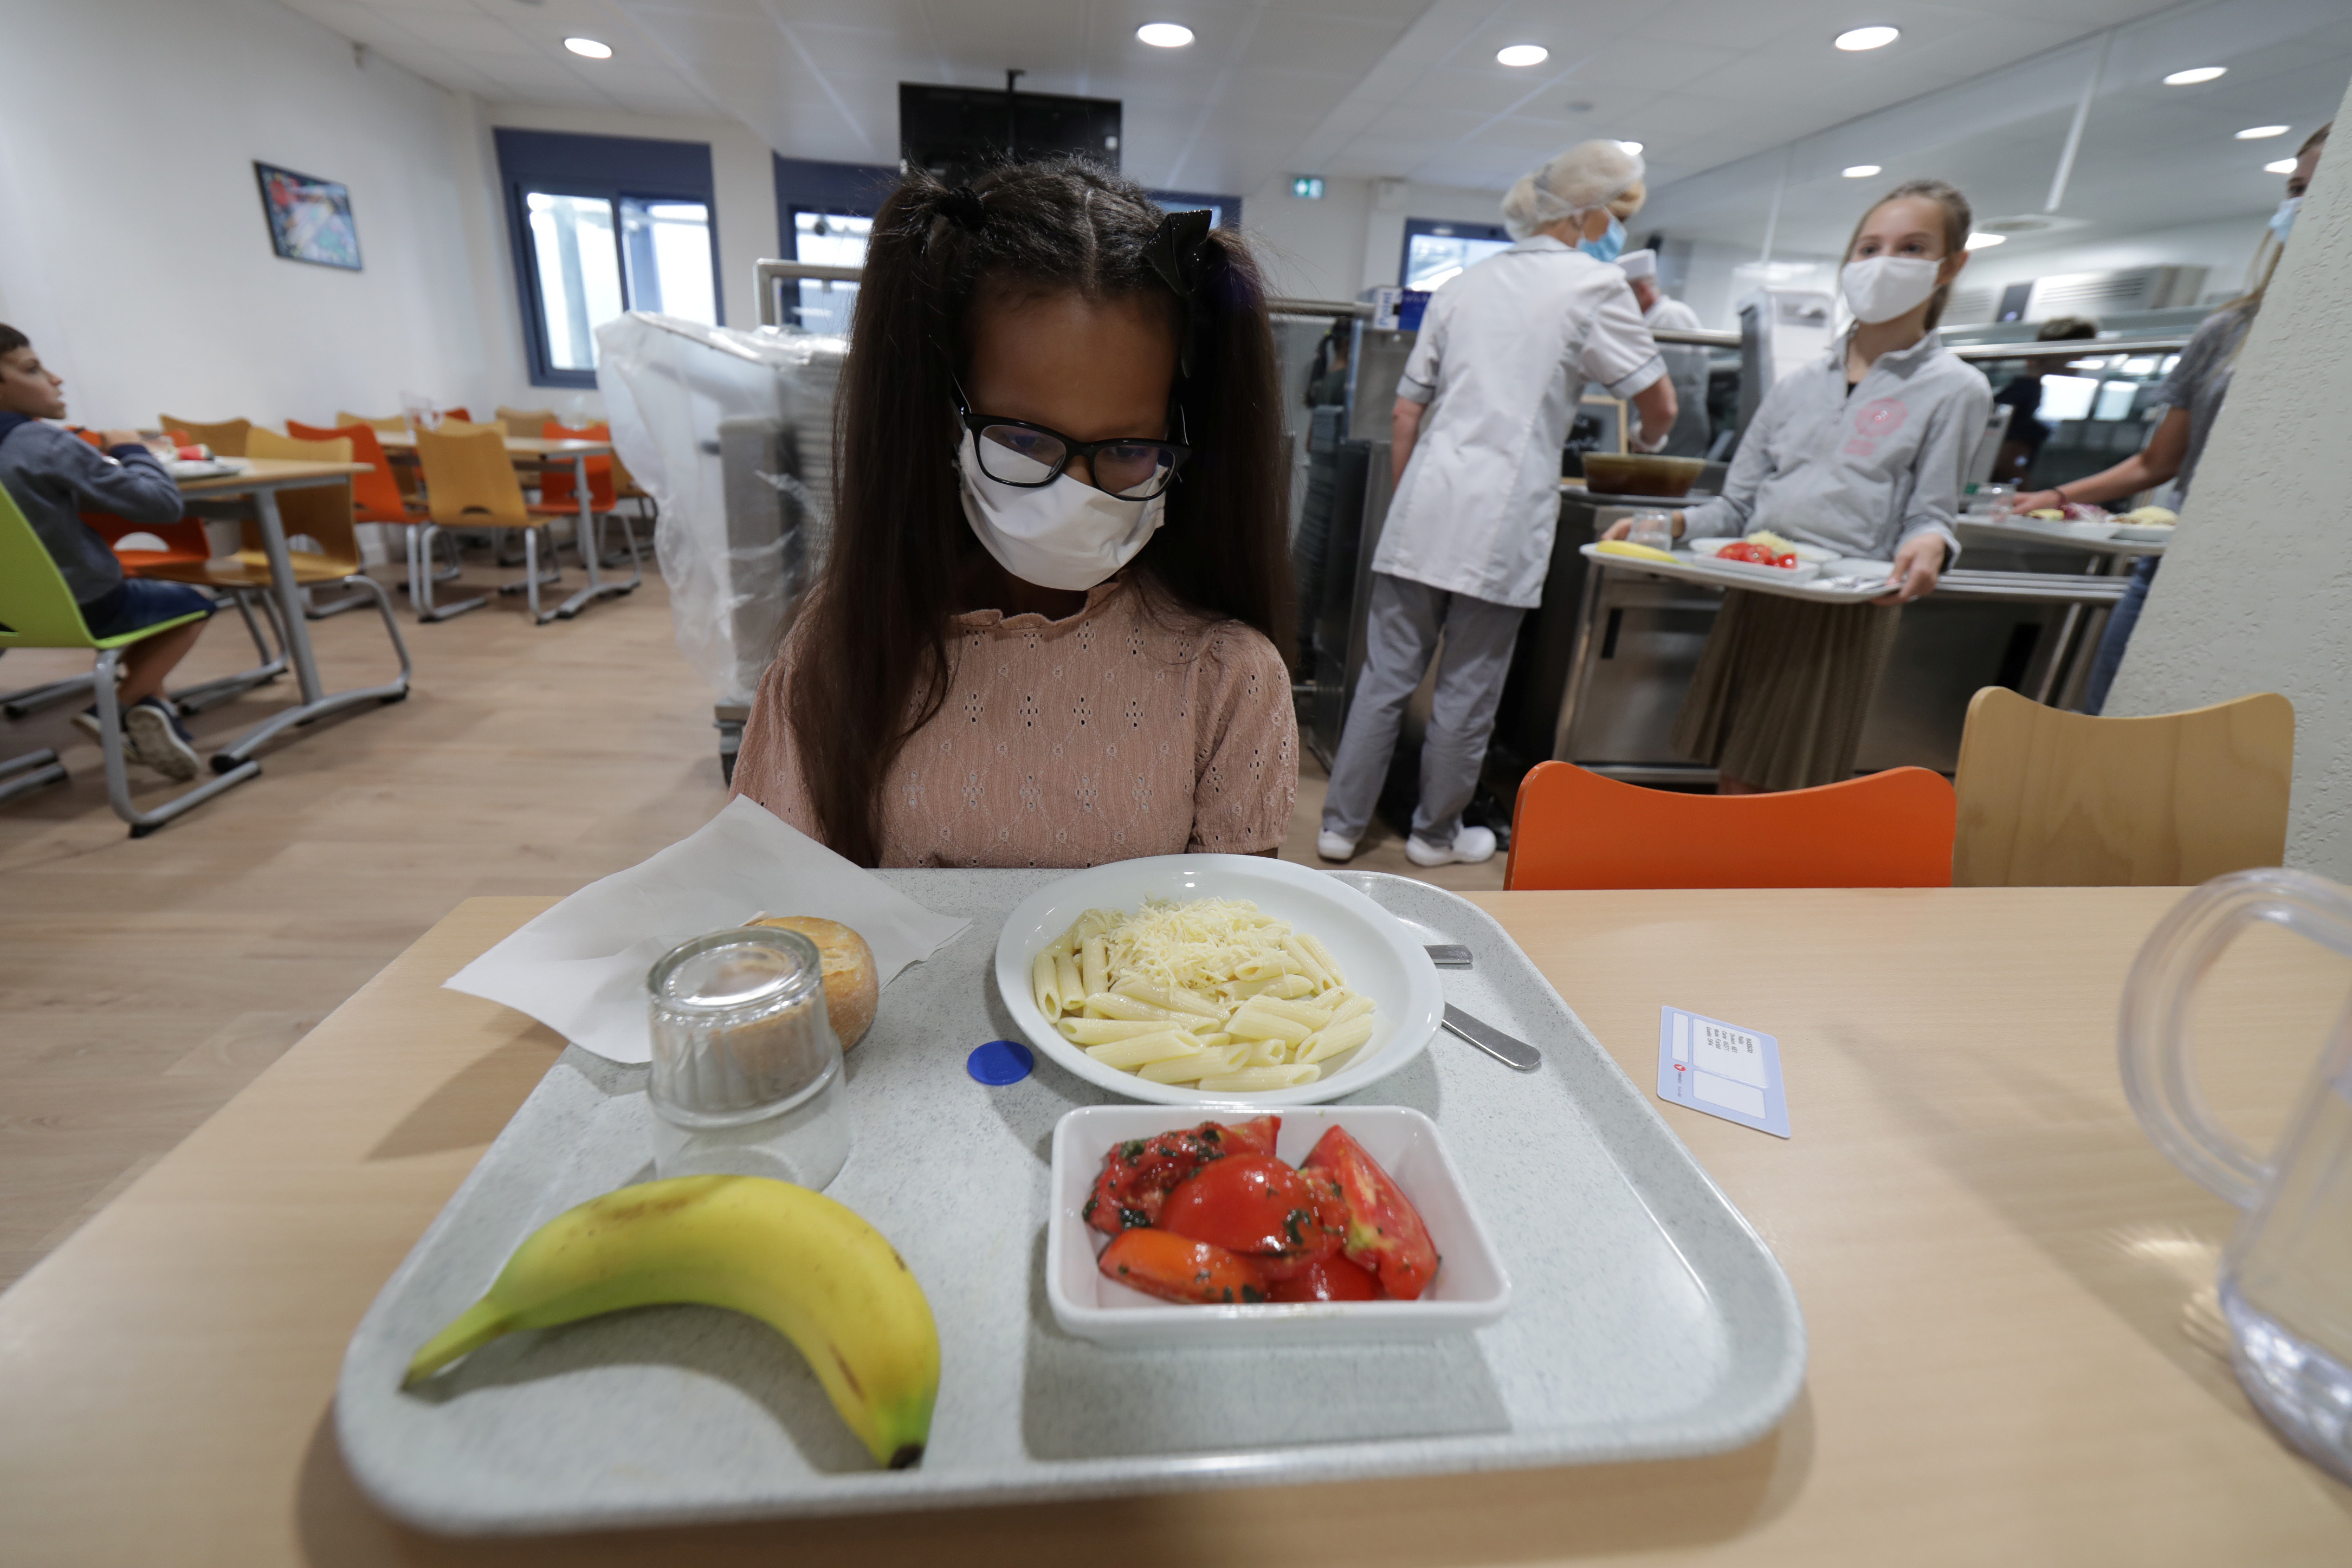 A secondary school student, wearing a protective face mask, sits in front of her meal tray in the school canteen room at the College Henri Matisse school during its reopening in Nice as French children return to their schools after the summer break with protective face masks and social distancing as part of efforts to curb a resurgence of the coronavirus disease (COVID-19) across France, September 1, 2020. REUTERS/Eric Gaillard - RC2MPI920XA0